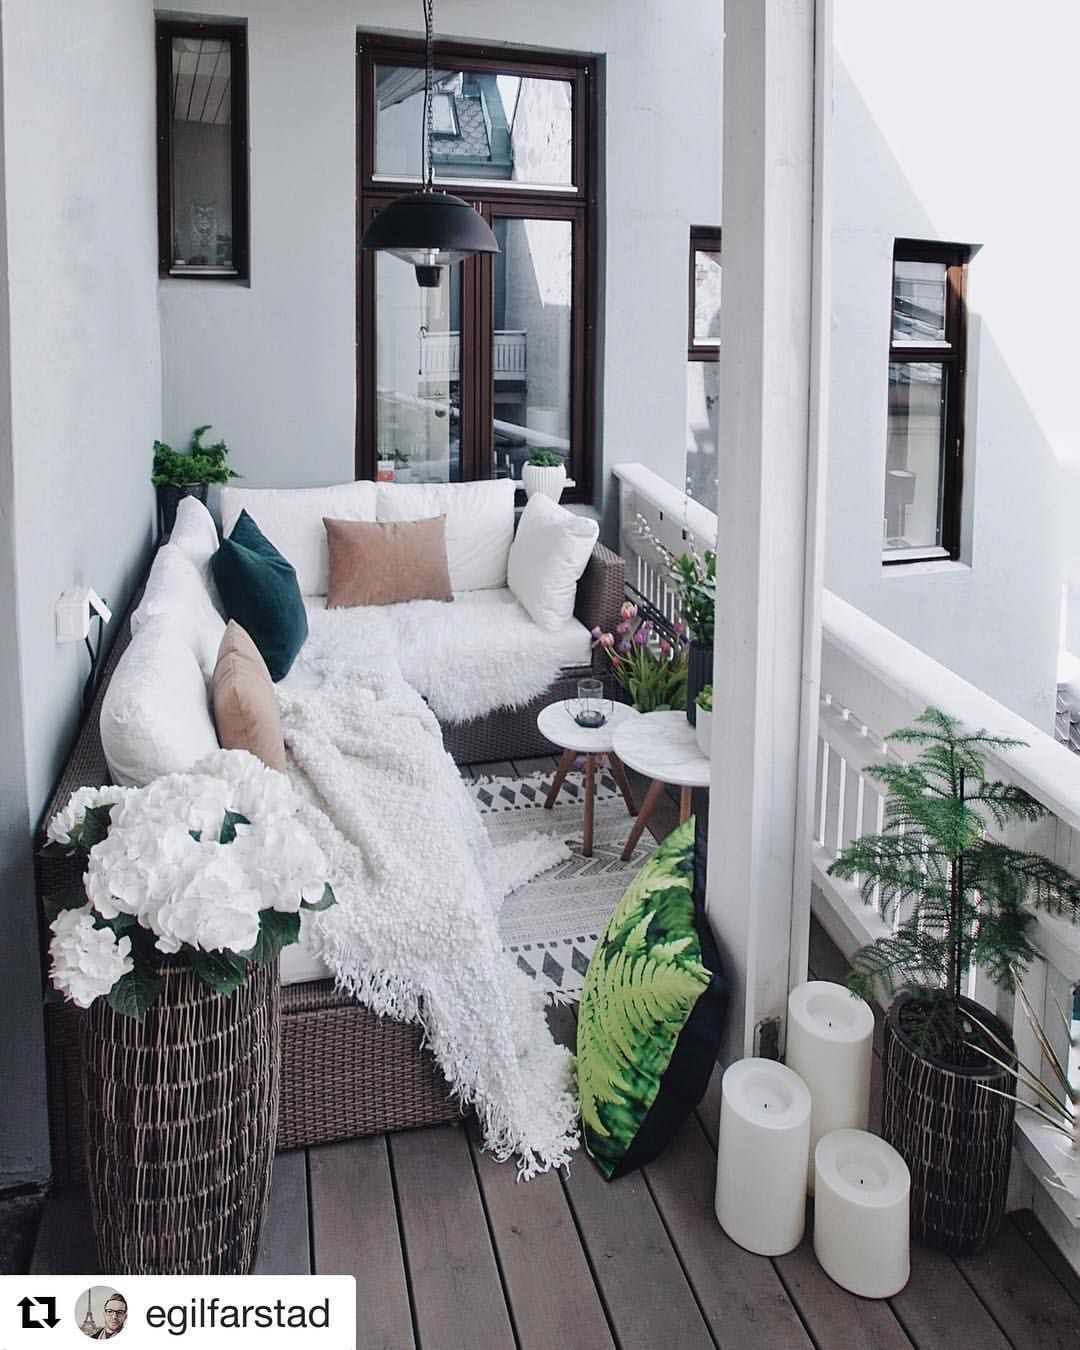 "Photo of Live Like You Like on Instagram: ""Wonderful balcony @egilfarstad 💕 Do you prefer a terrace or balcony? 🤔 _ #homebook #homedecor #terrace #balcony #interiordesign # interior125 # cozyhome … """